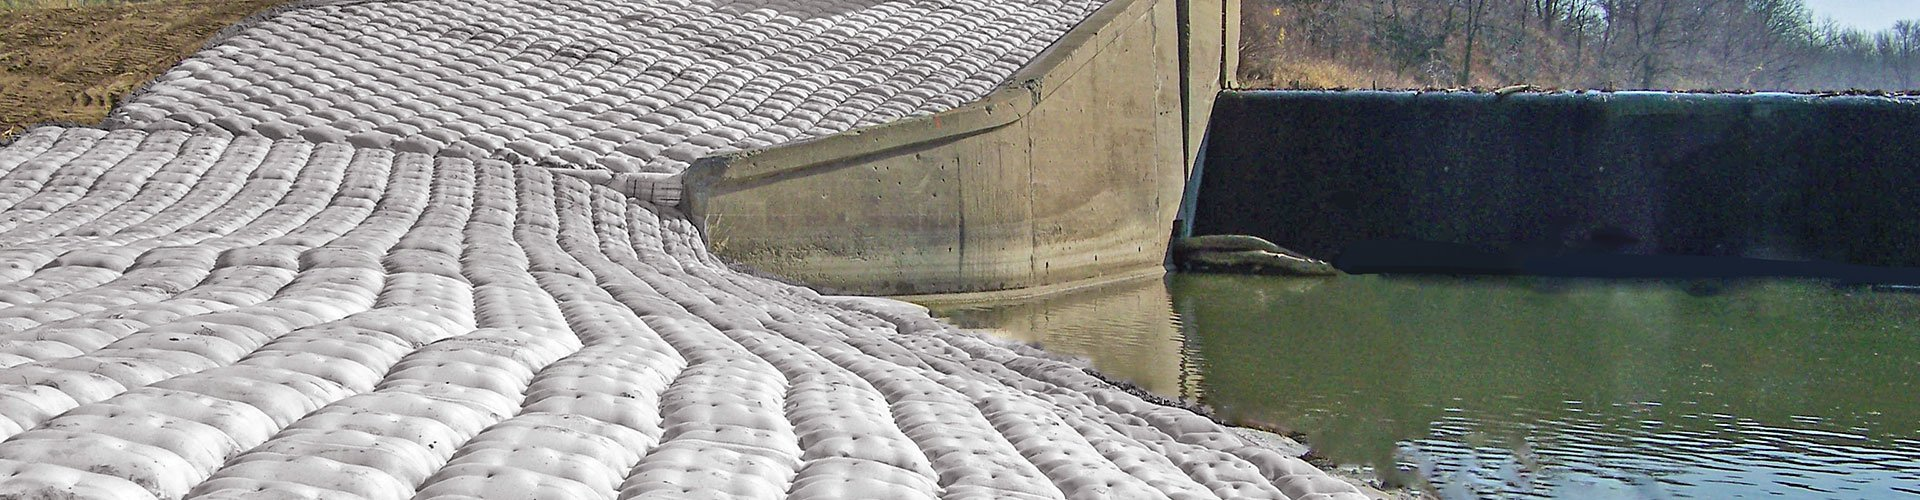 dam construction, scour remediation, scour control, fabric formed articulating block mats